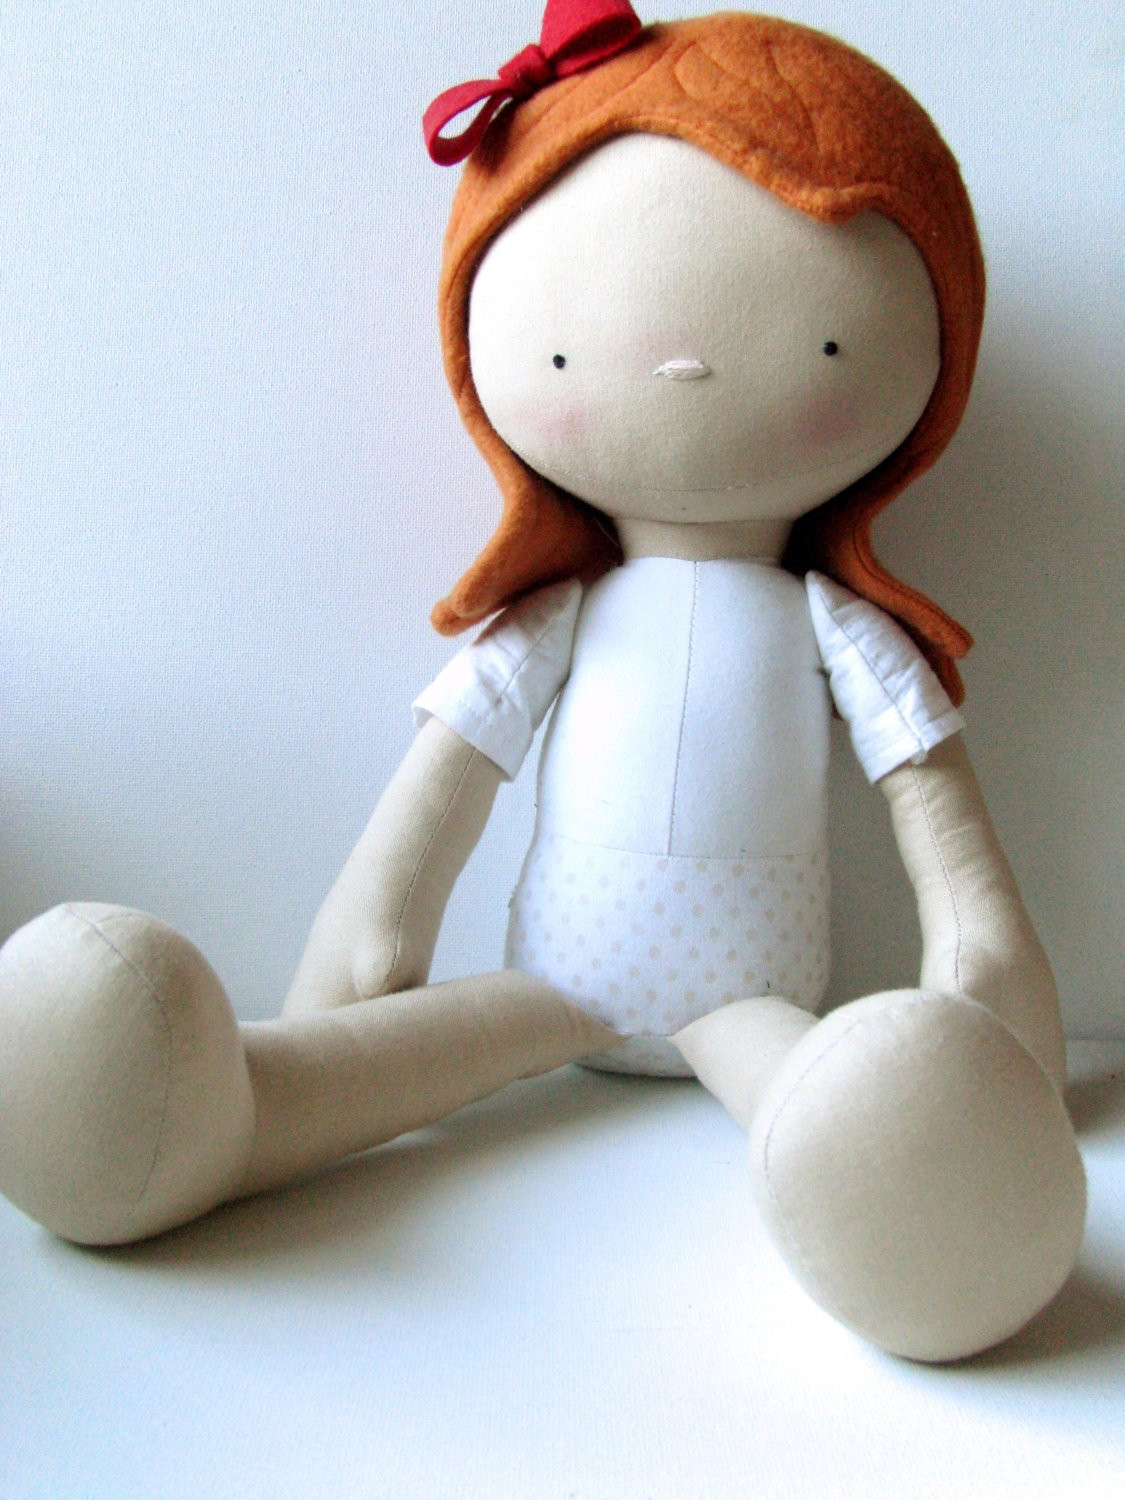 Doll Patterns Awesome Delightful Doll Sewing Pattern Of Doll Patterns Best Of Gingermelon Dolls My Felt Doll Knitted Outfit Patterns